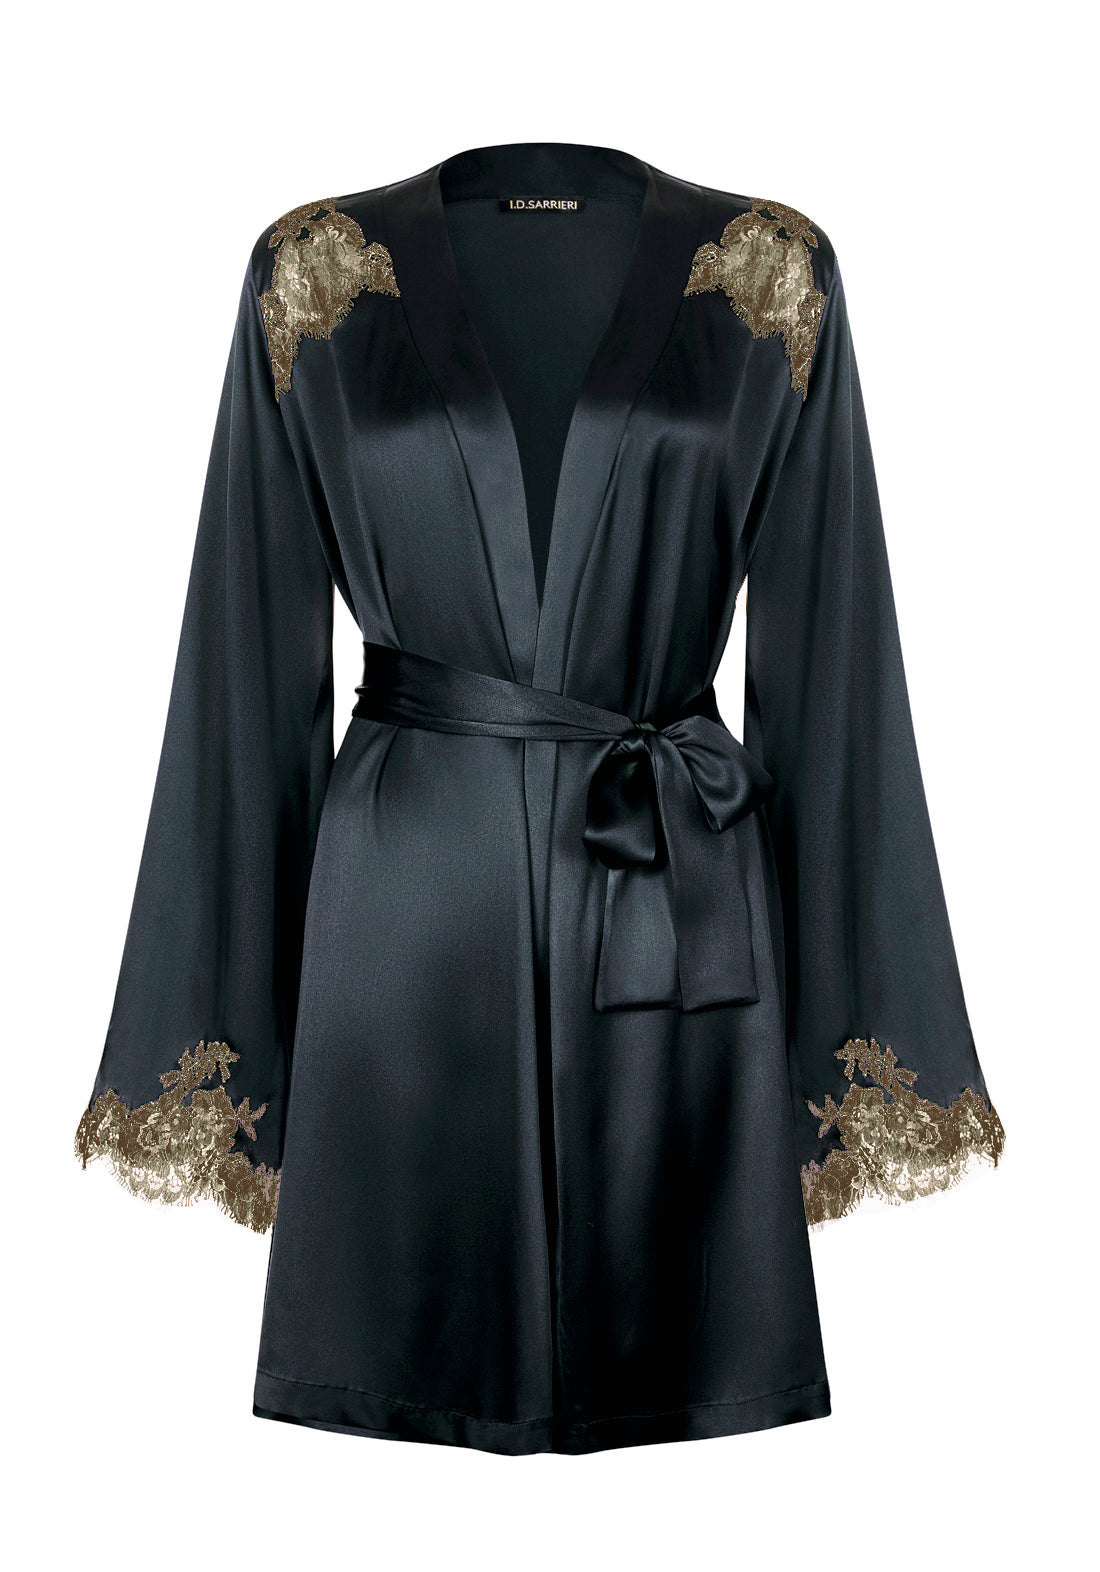 Hotel Particulier Robe in Deep Anthracite/Mink